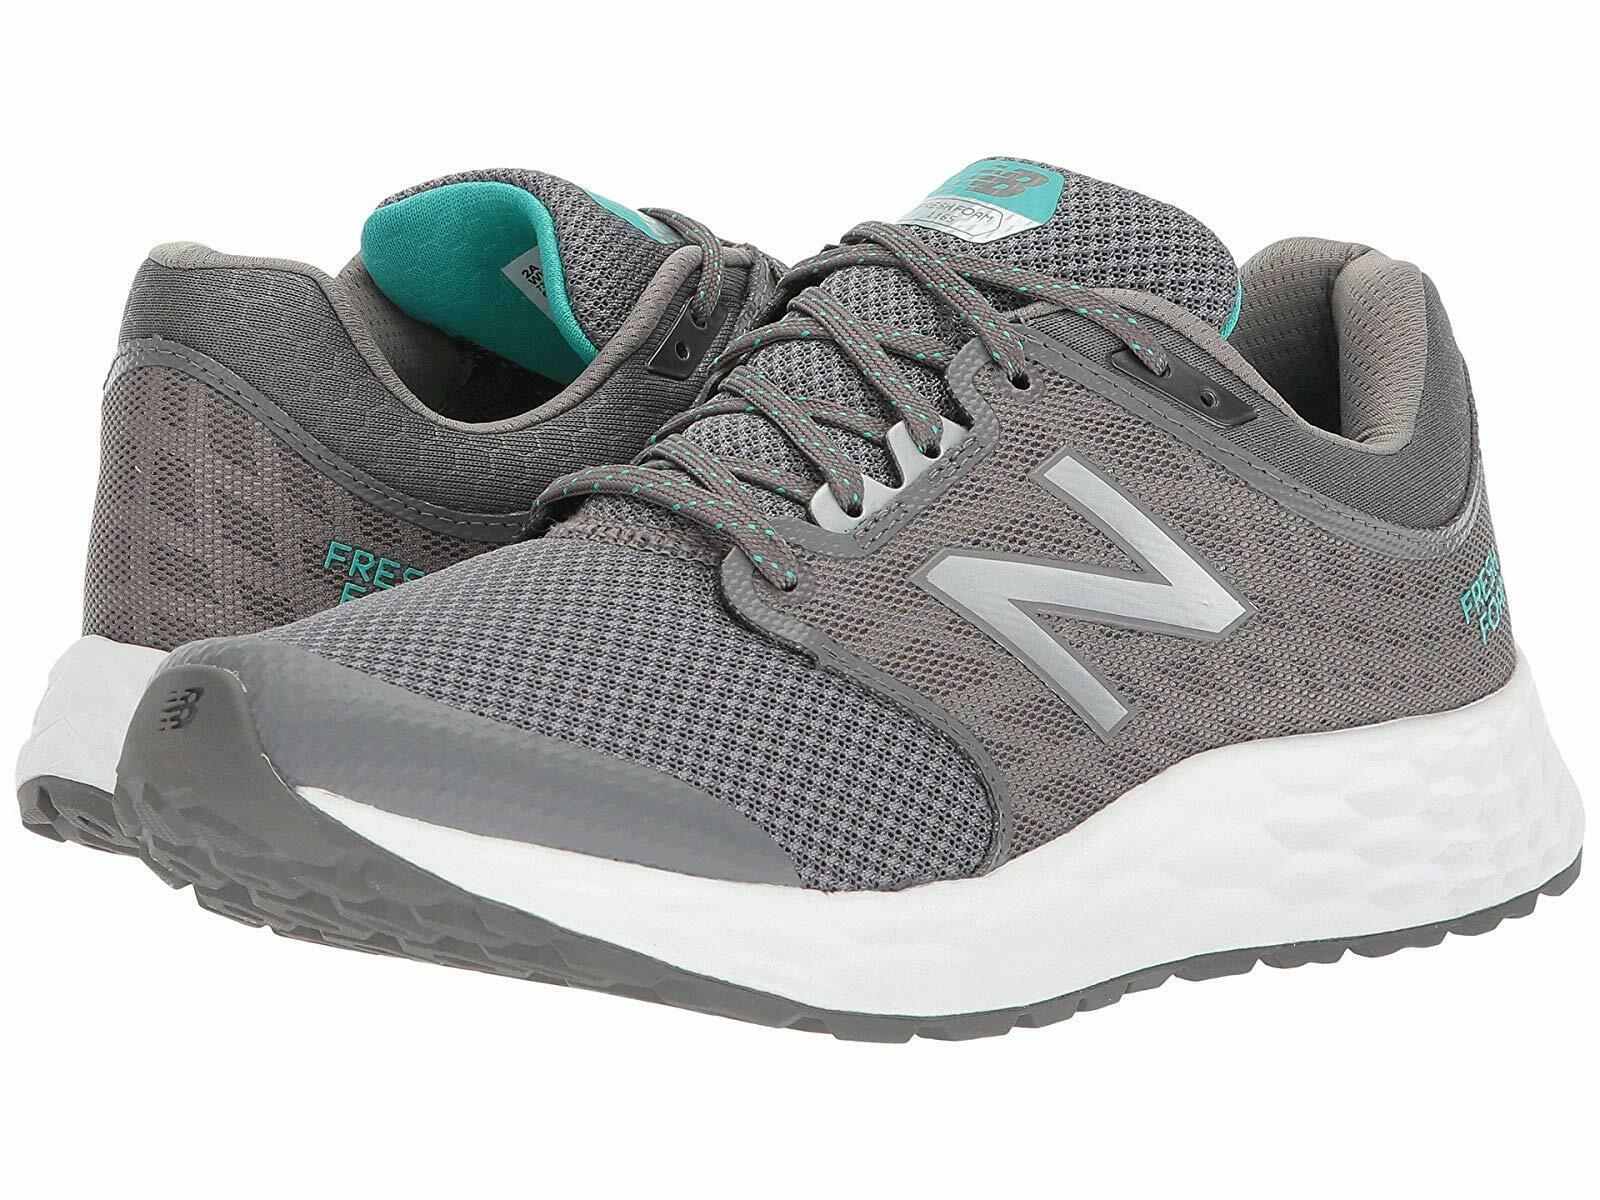 Woman's Sneakers & Athletic shoes New Balance 1165v1